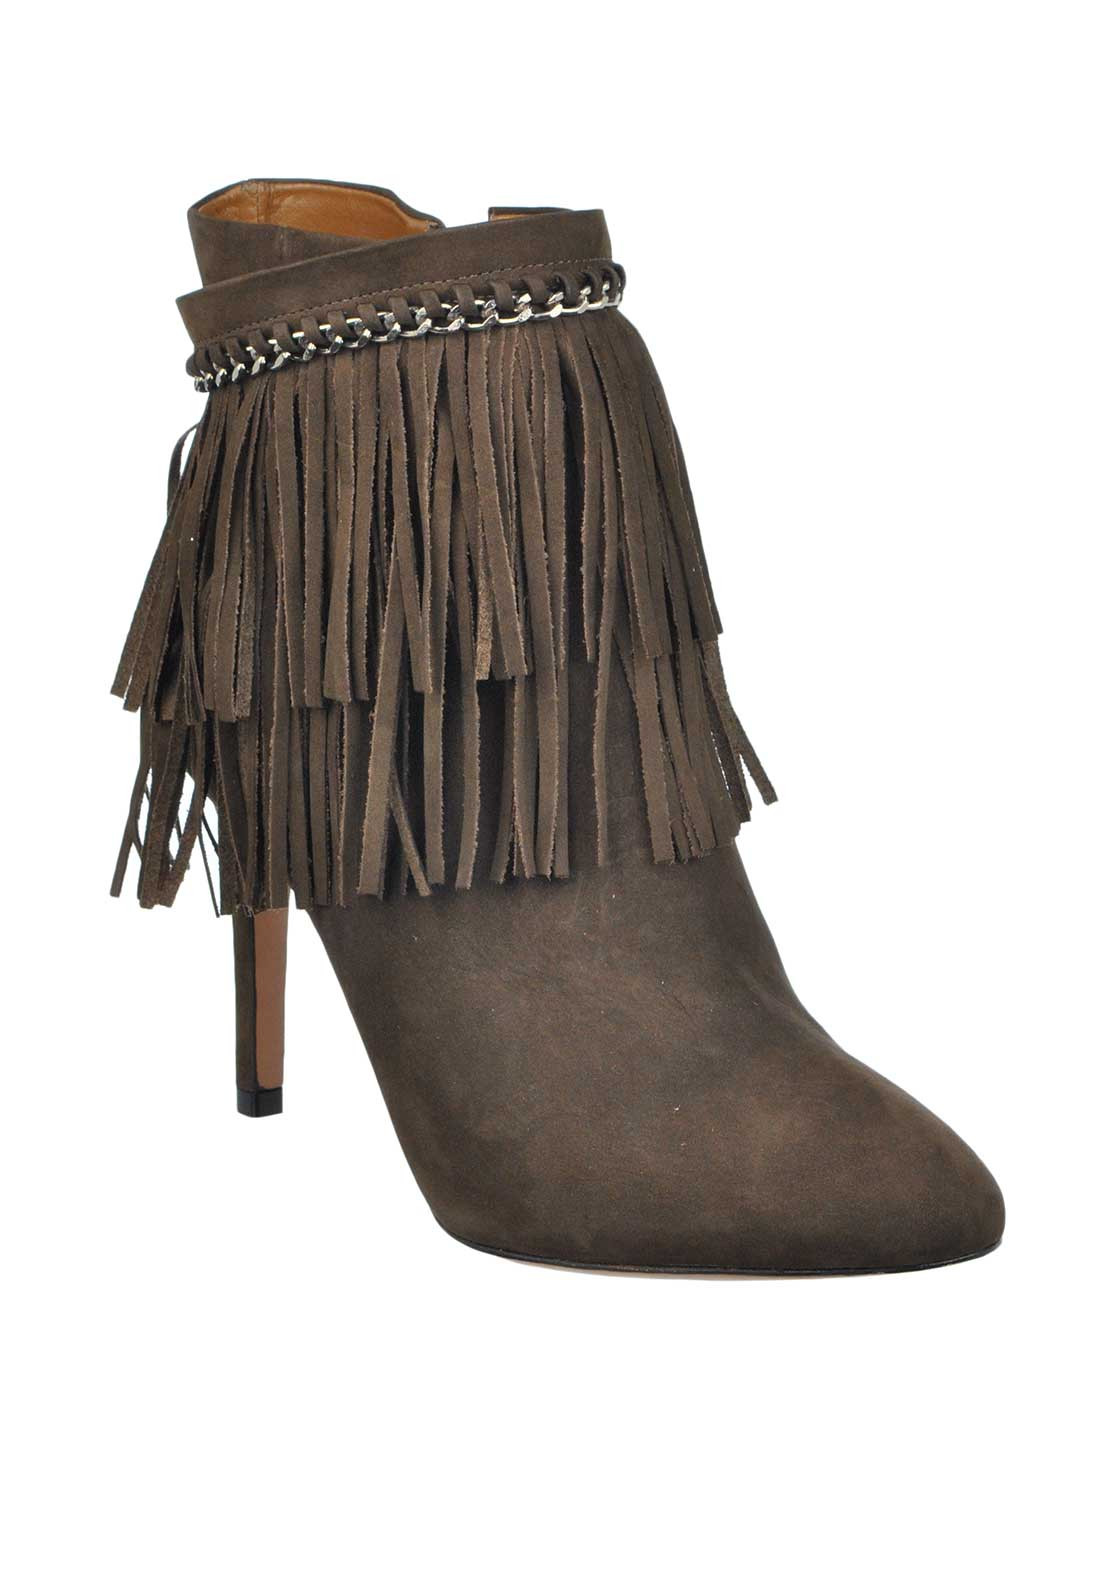 Unique Footwear Suede Leather Fringed Chain Heeled Short Boots, Taupe